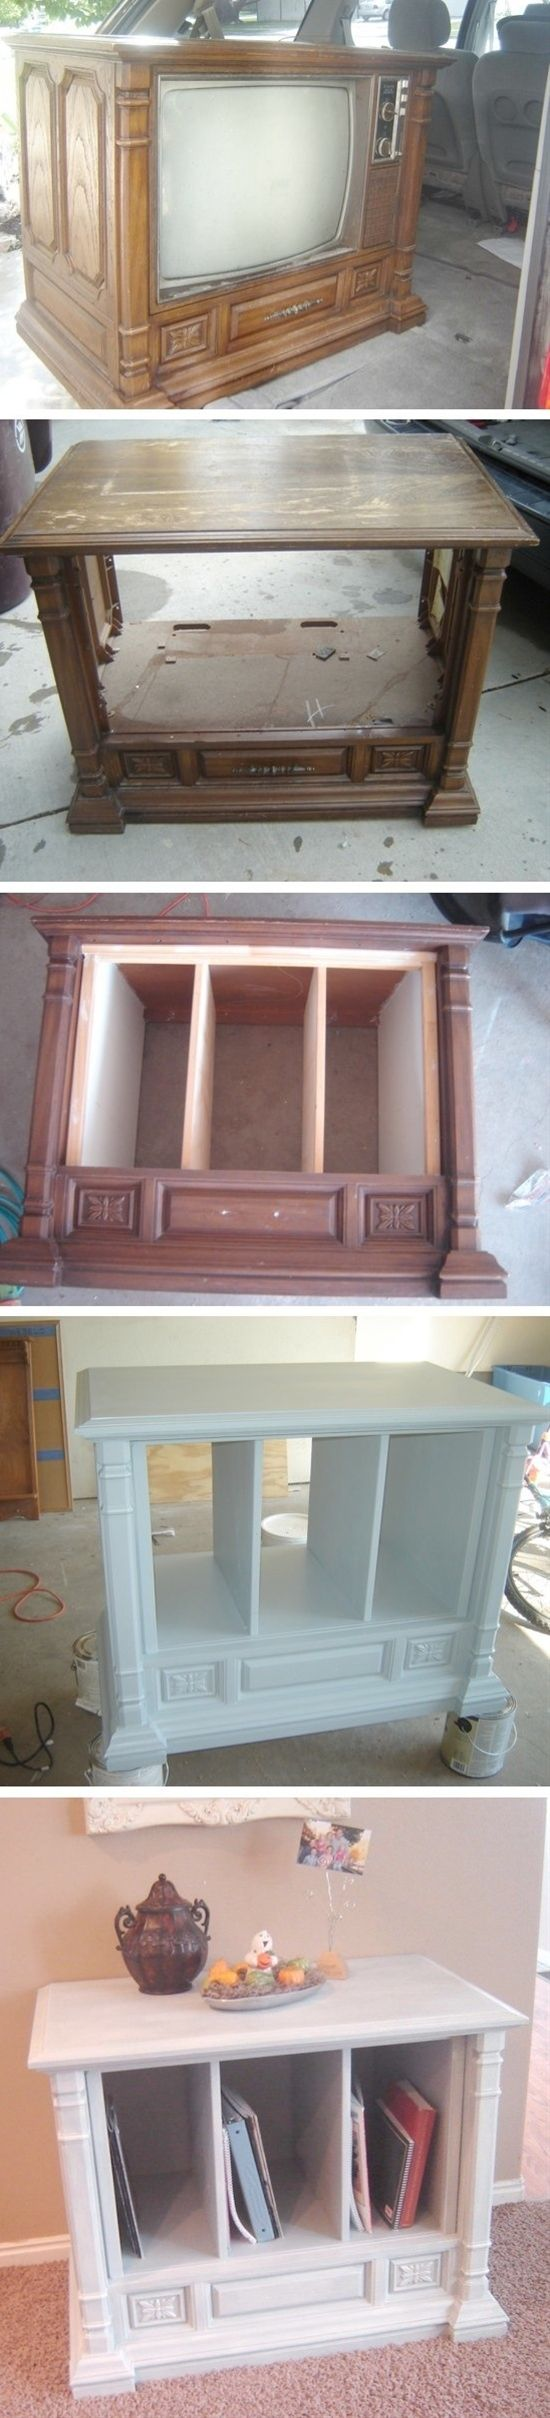 An old tv turned into a living room hutch! Impressive.